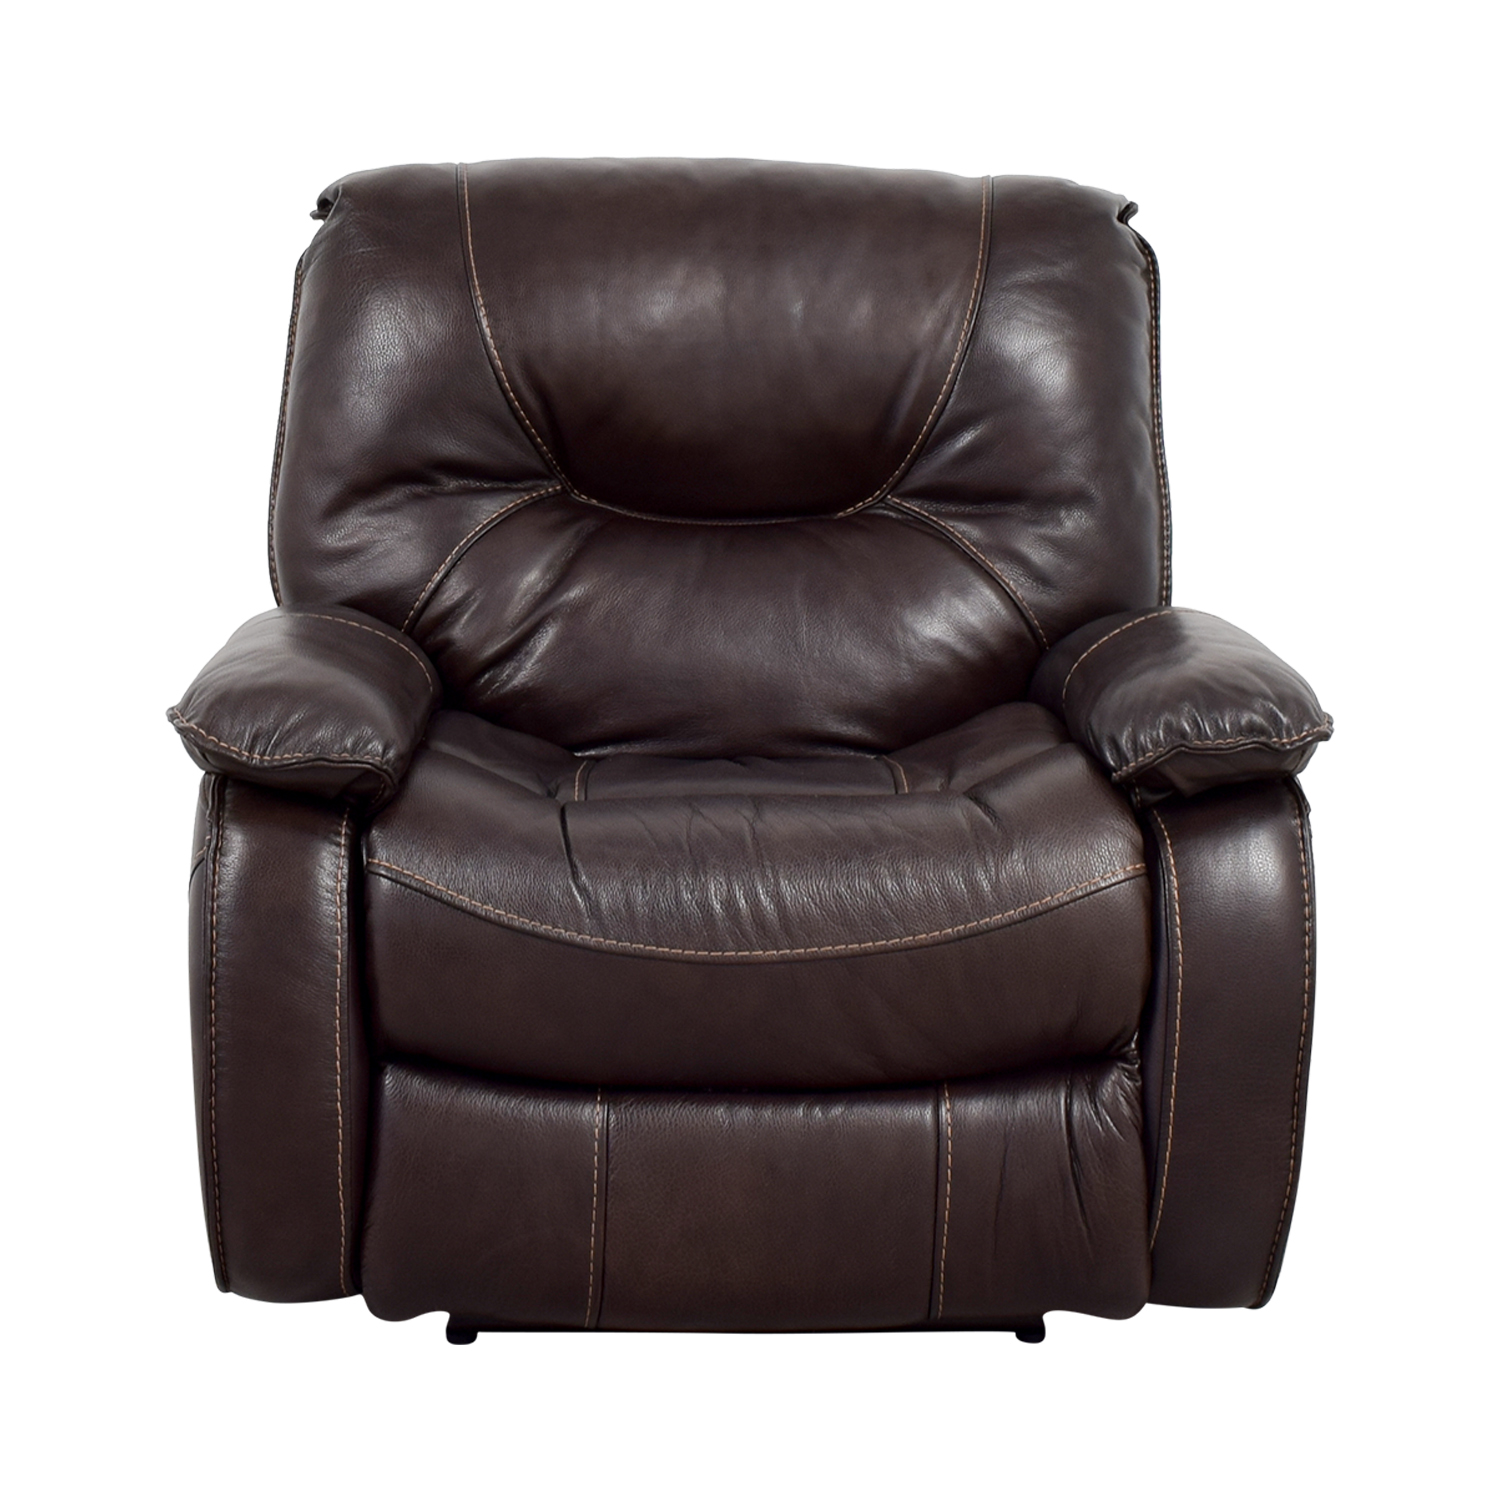 Dark Brown Leather Motorized Recliner used